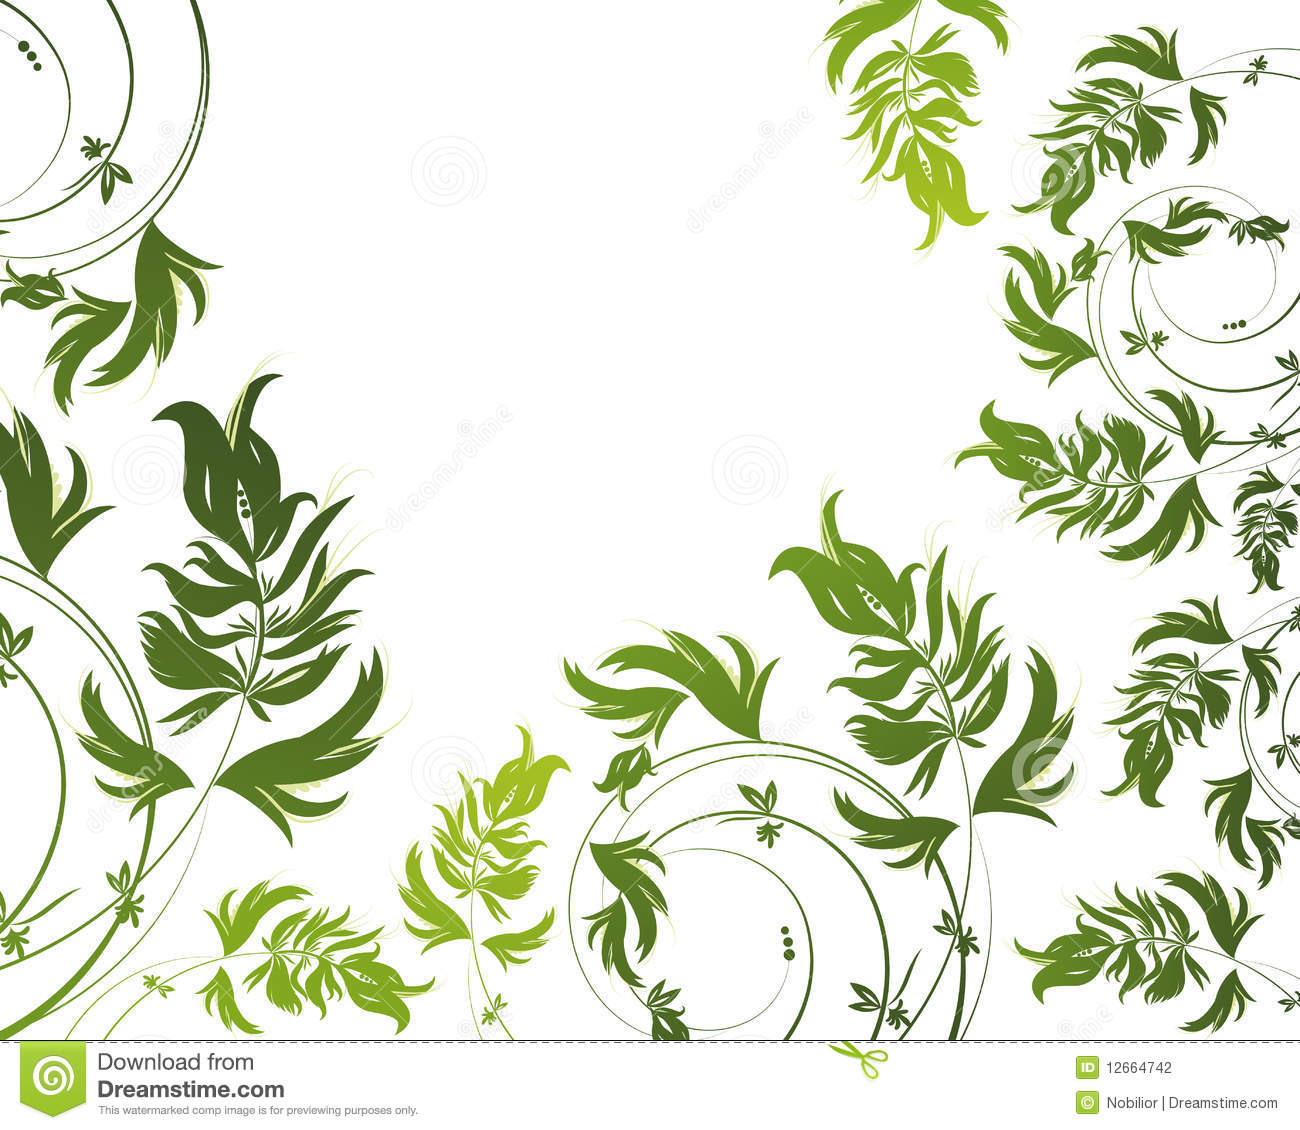 Green and white floral pattern - photo#14